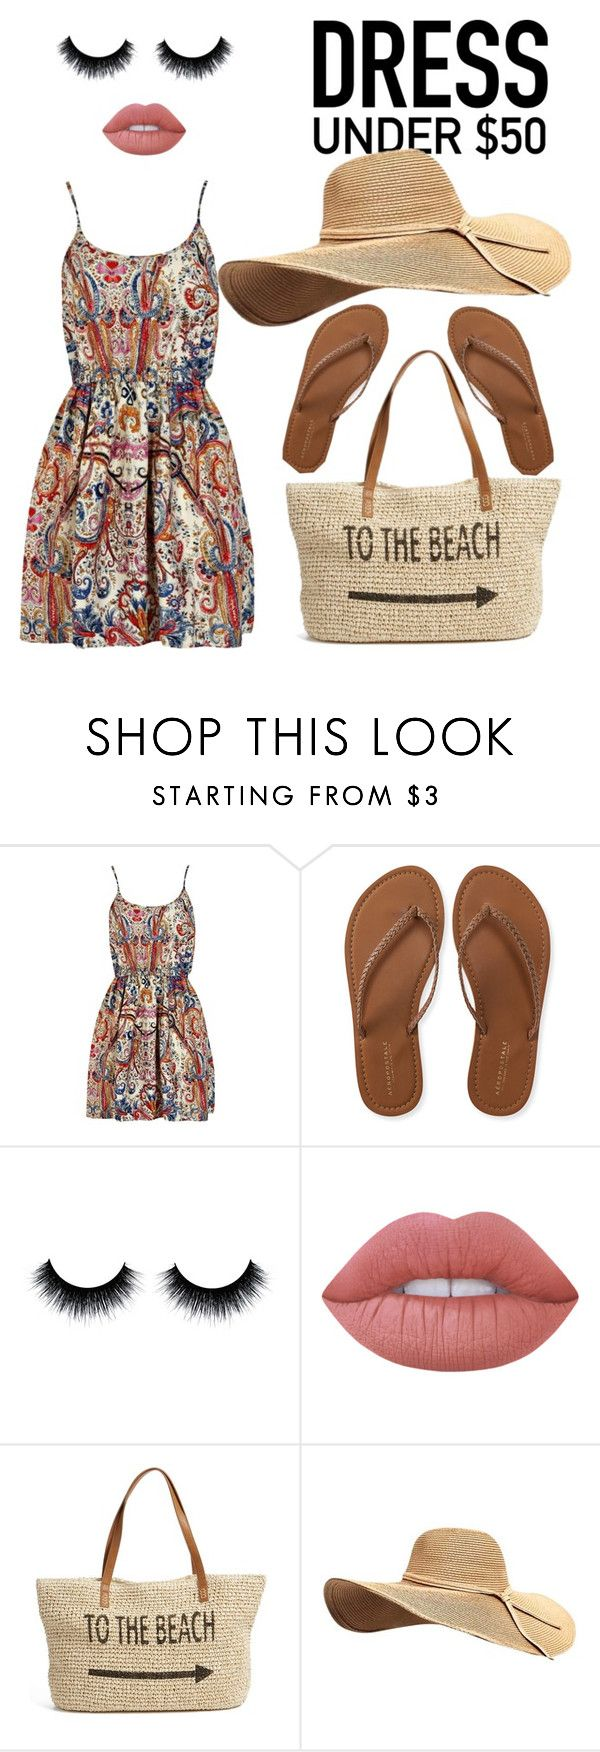 """Untitled #22"" by cidorell ❤ liked on Polyvore featuring Aéropostale, Lime Crime, Straw Studios and Dressunder50"